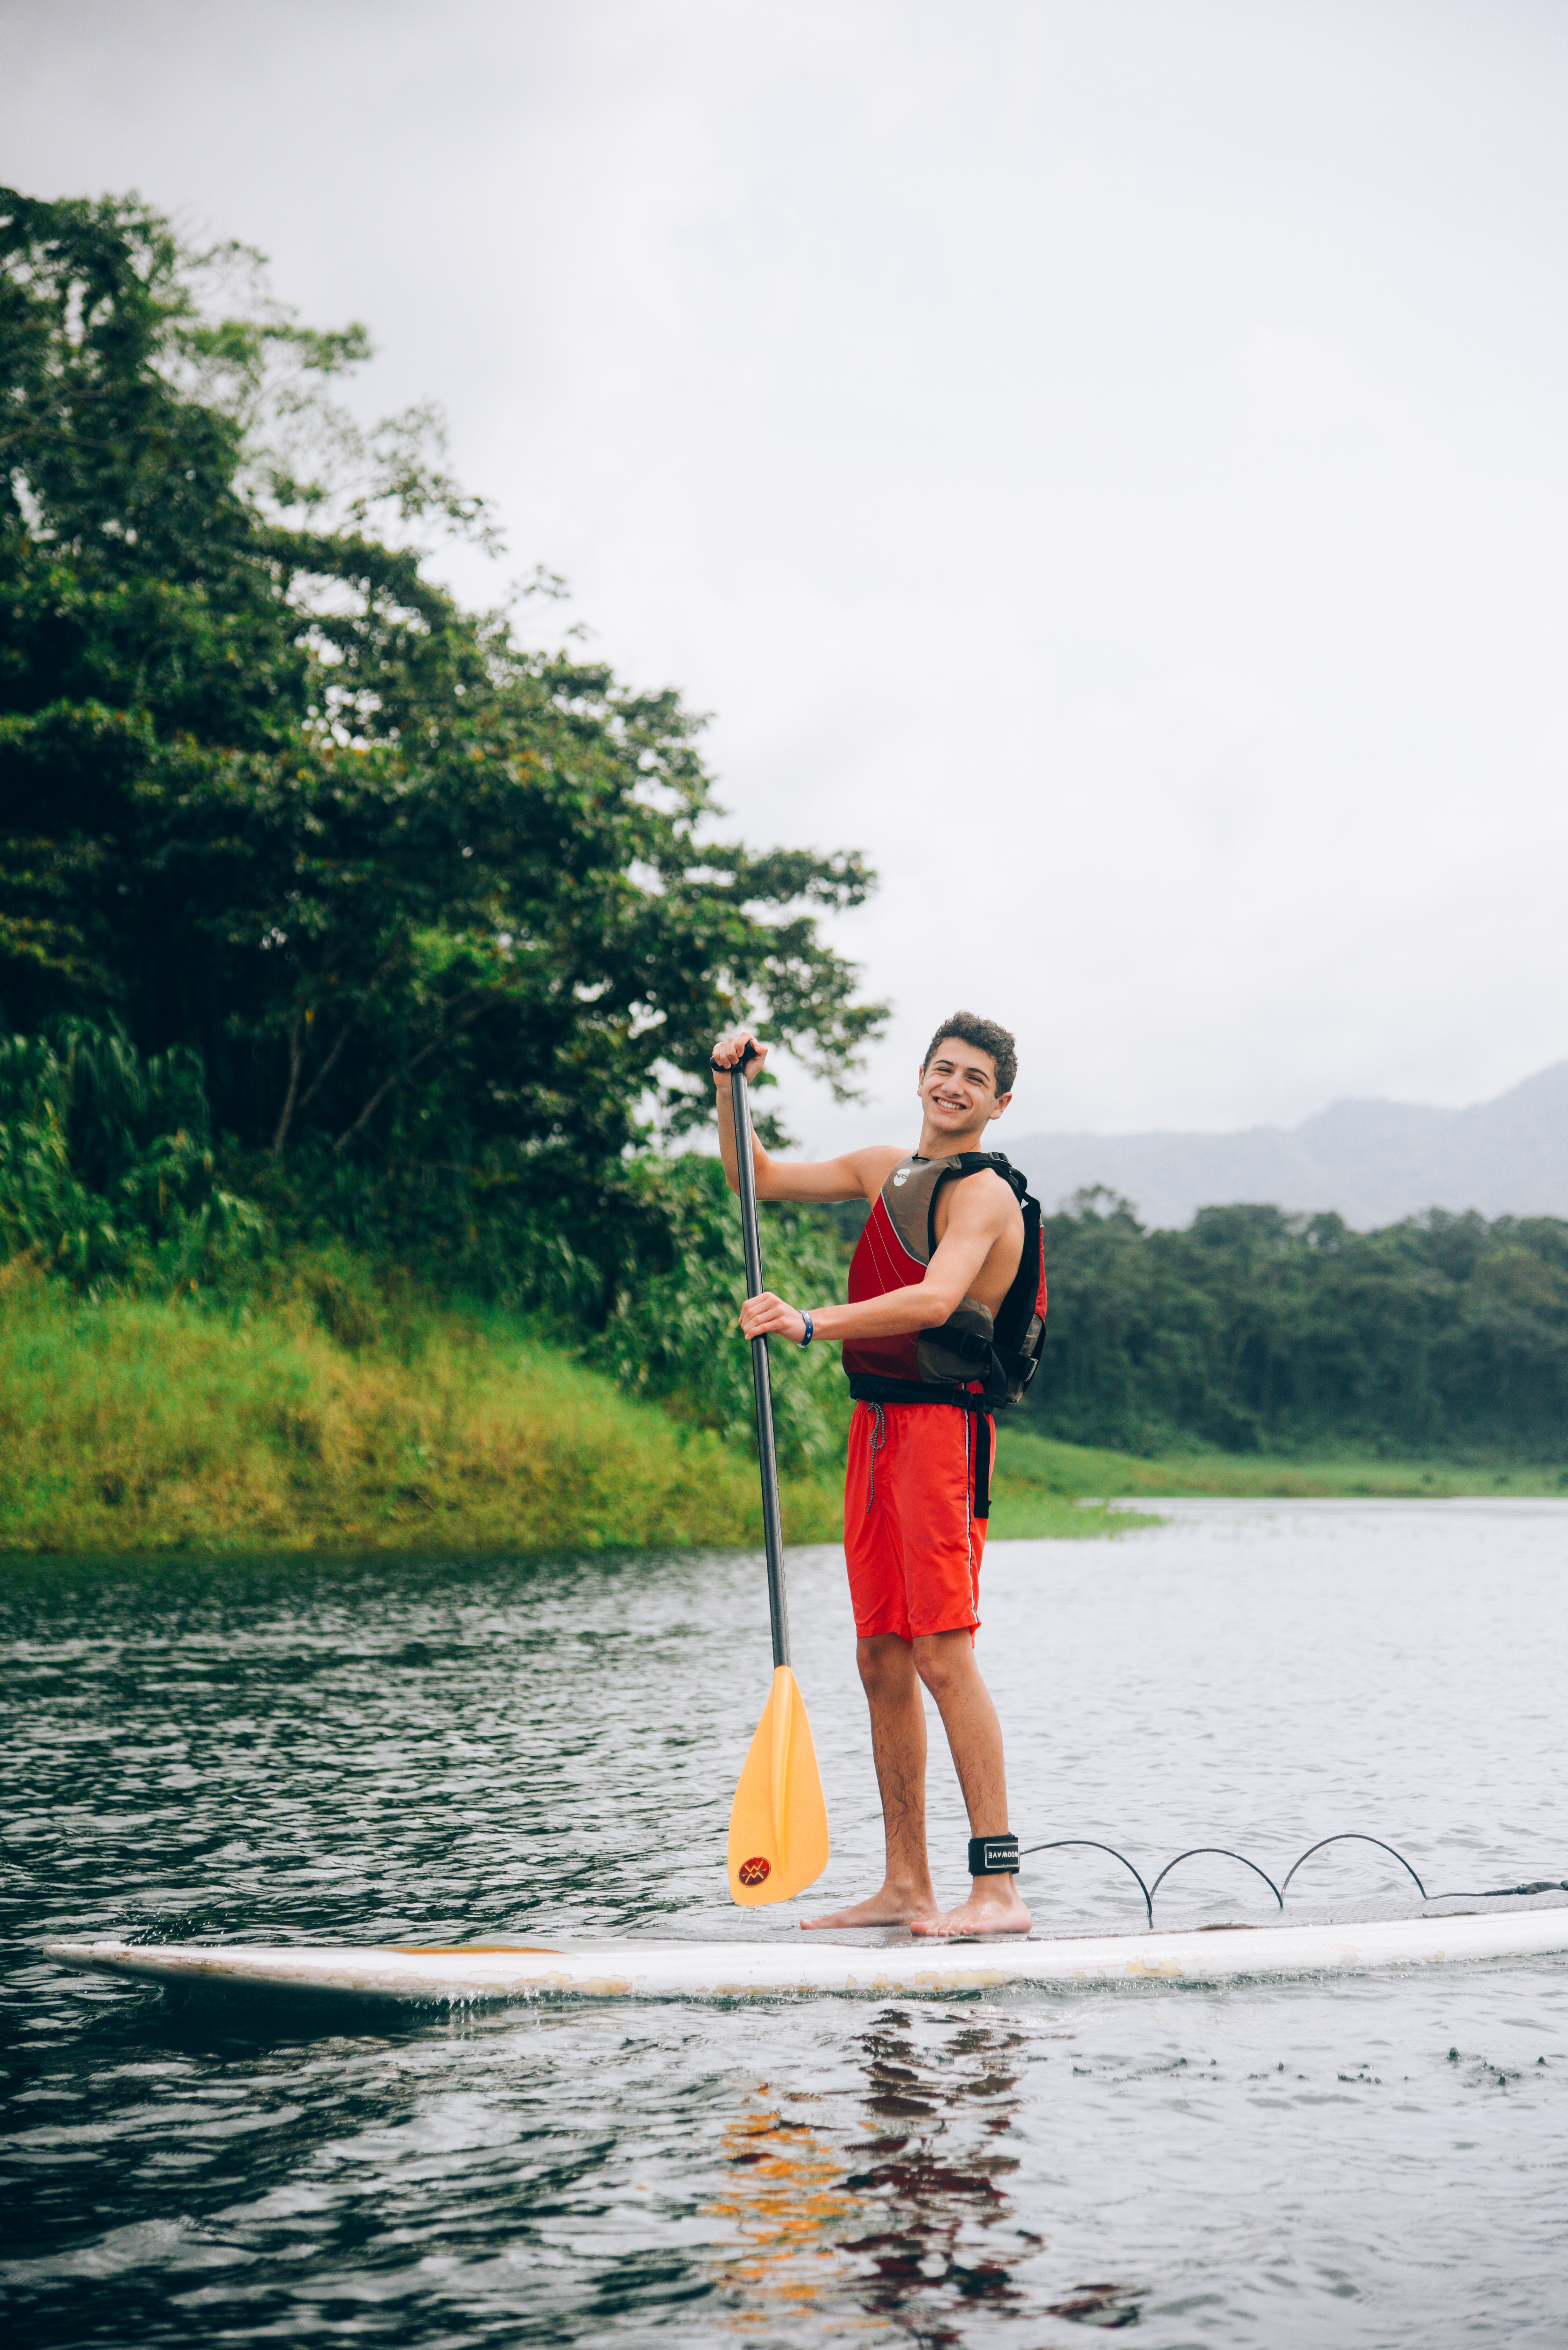 Private tour of the newest and coolest paddle sport in Costa Rica!